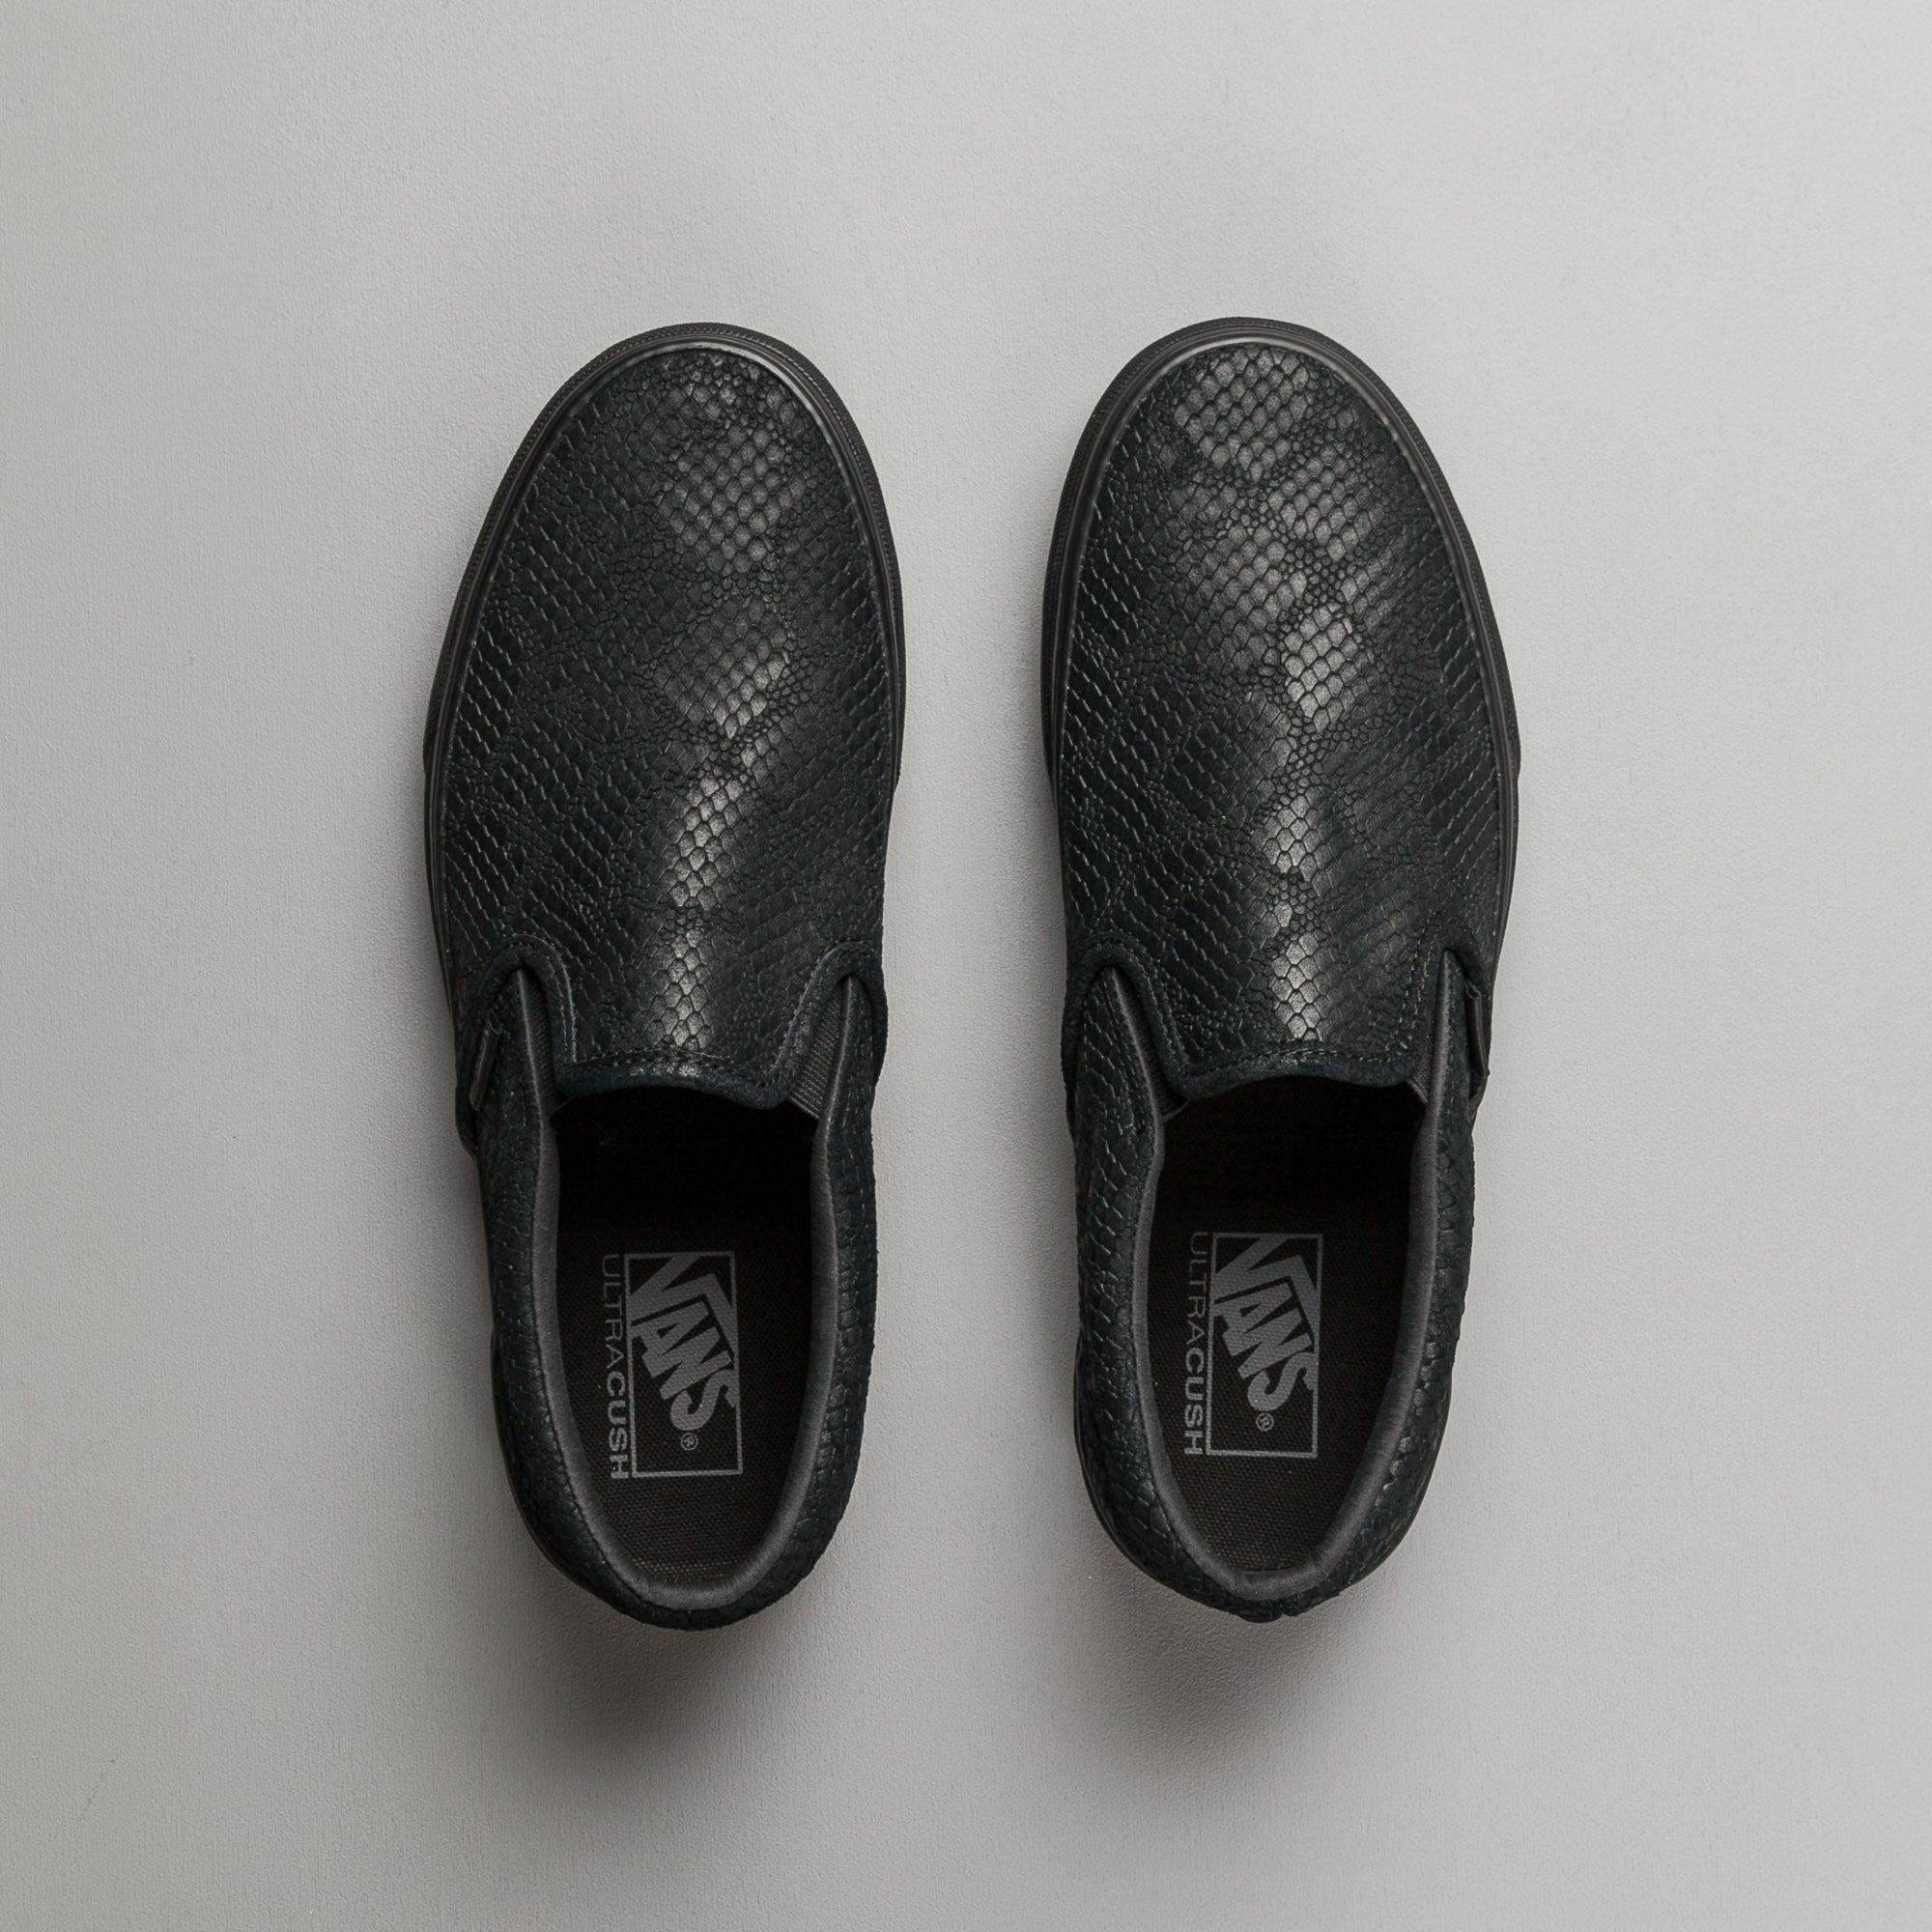 Vans Classic Slip-On DX Shoes - Reptile Black